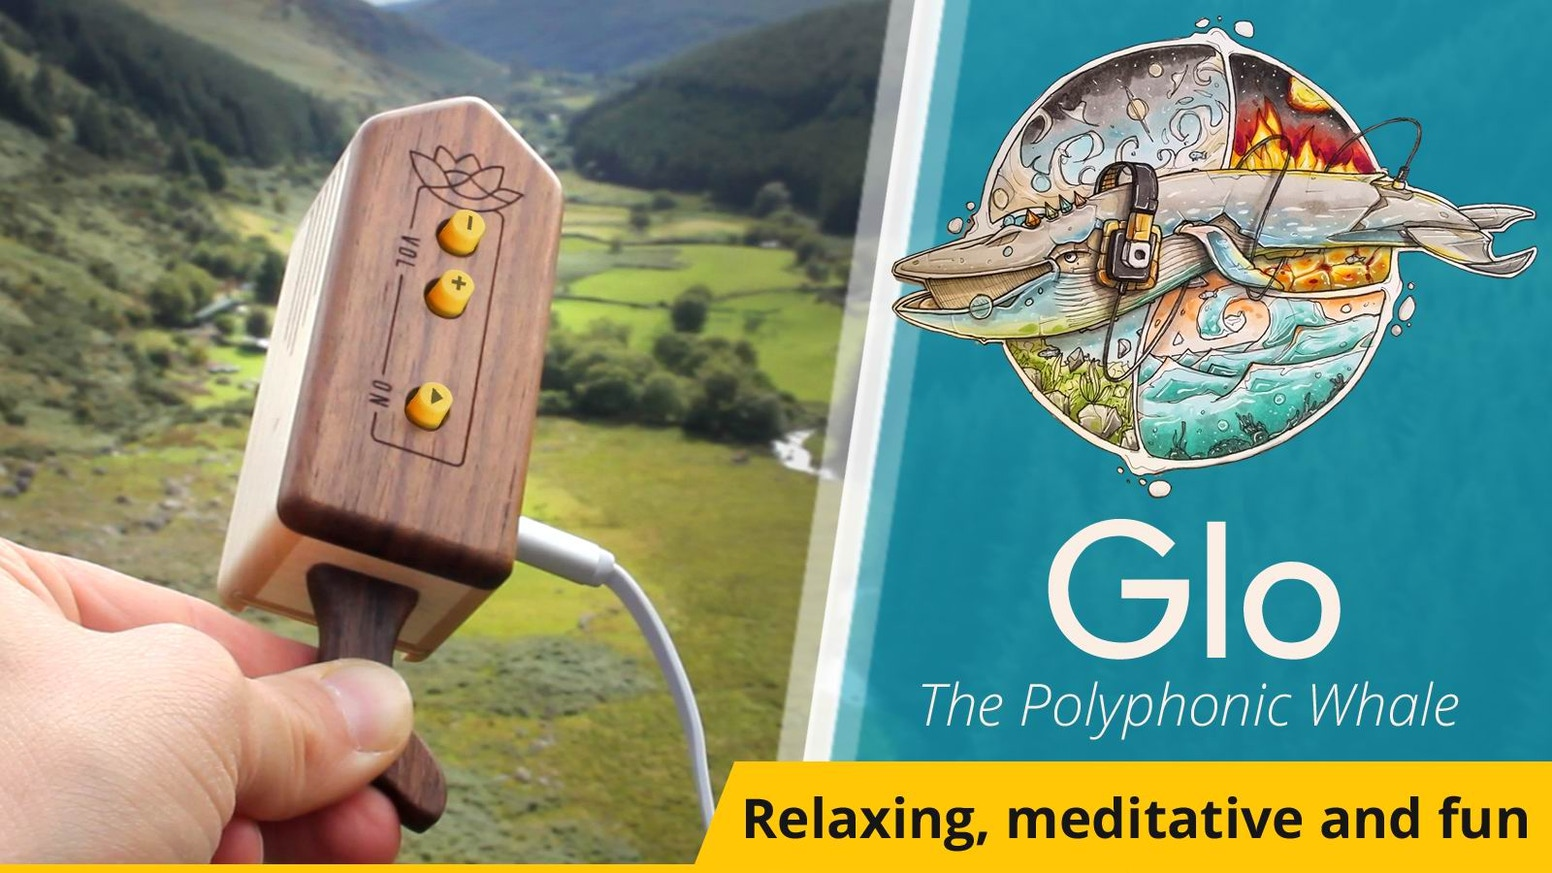 A pocket-sized device that transforms the sounds of your world into a melodic ambient soundtrack. Enclosed in a handmade wooden case. Missed the campaign? No worries, now you can pre-order your Glo at our website: